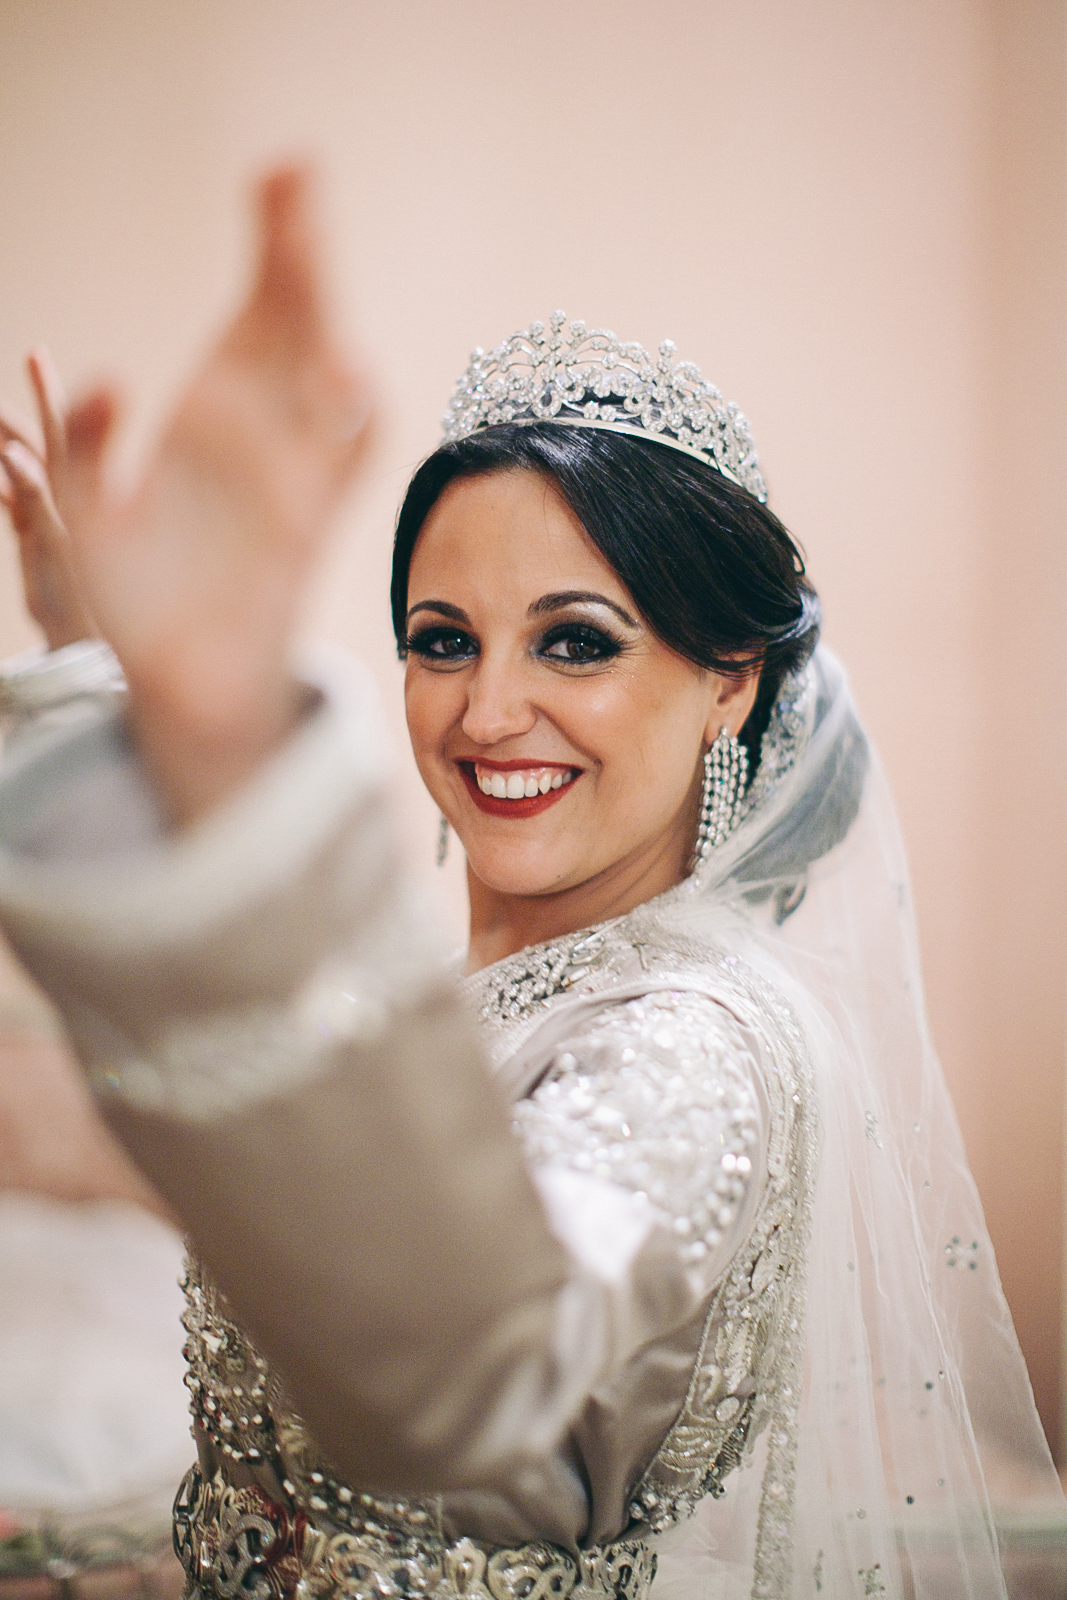 traditional_moroccan_wedding_photographry_casablanca_morocco_houda_vivek_ebony_siovhan_bokeh_photography_049.jpg